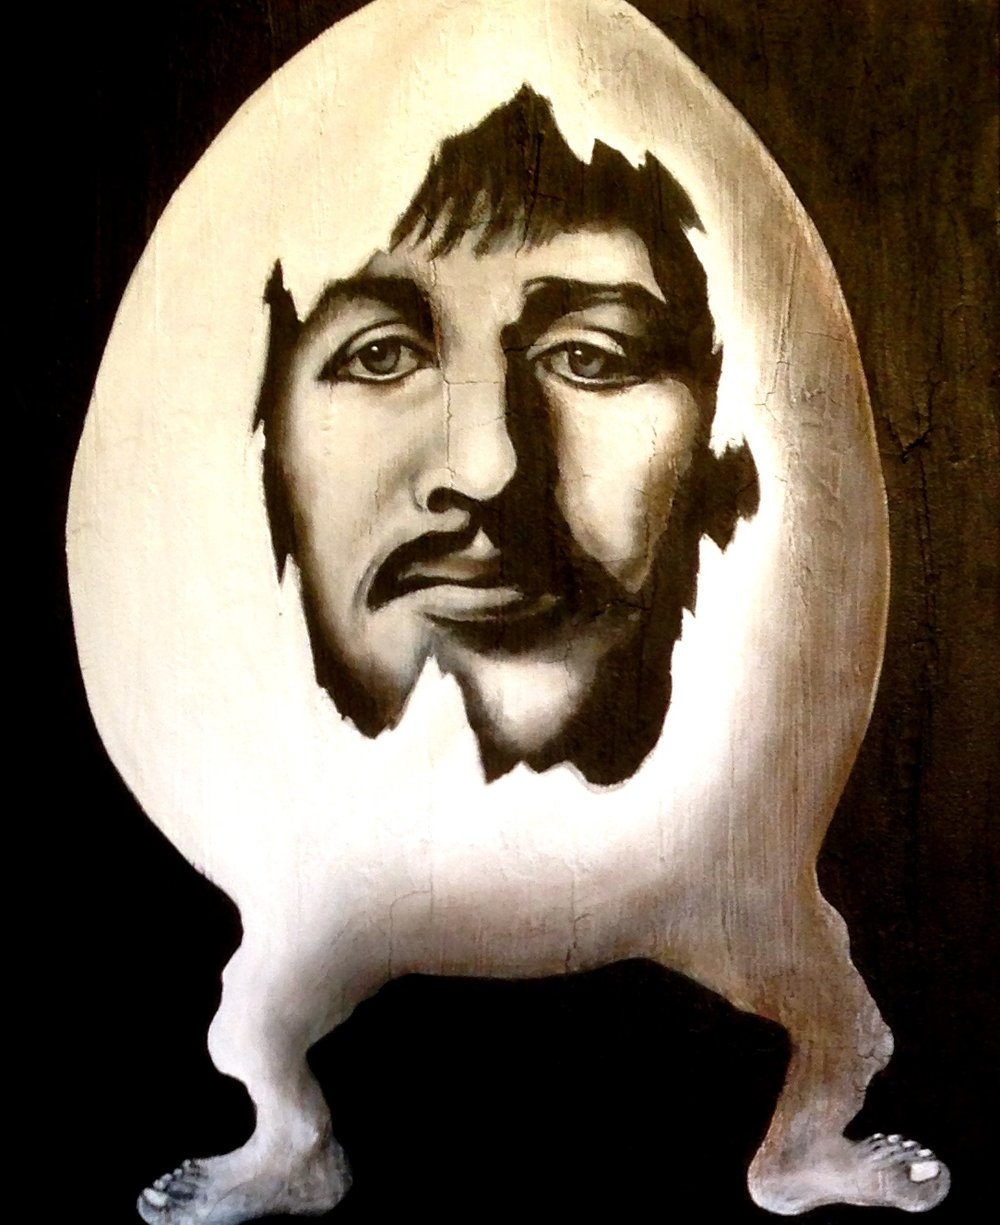 Ringo Starr Beatle Egg, 2016  Acrylic, oil texture medium on canvas